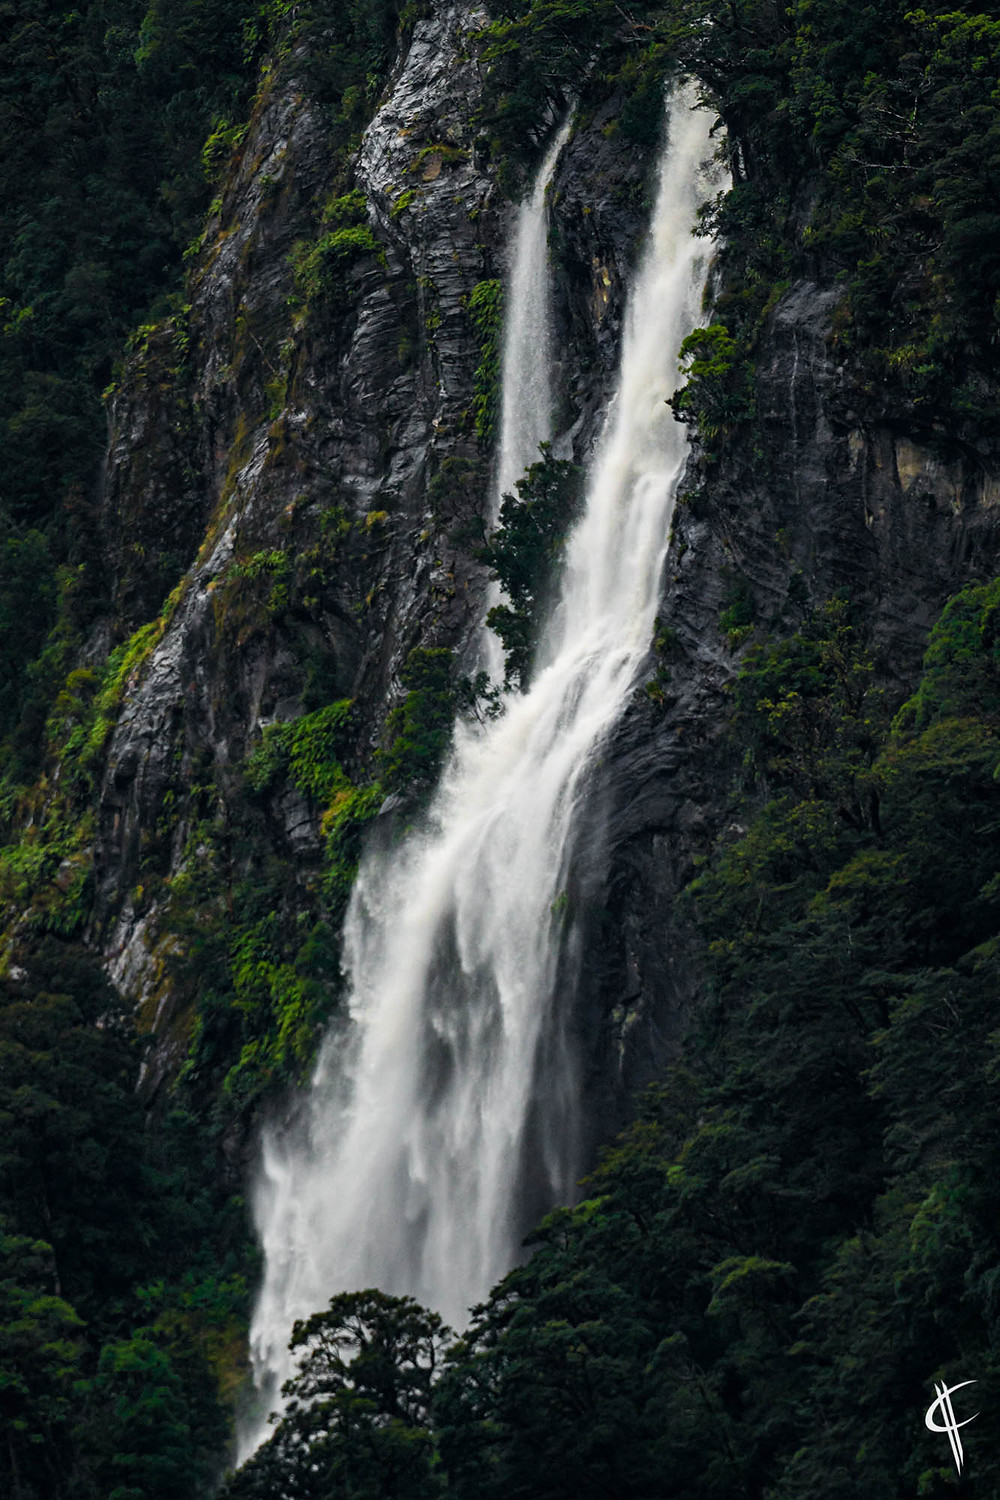 One of thousand waterfalls in Doubtful Sound